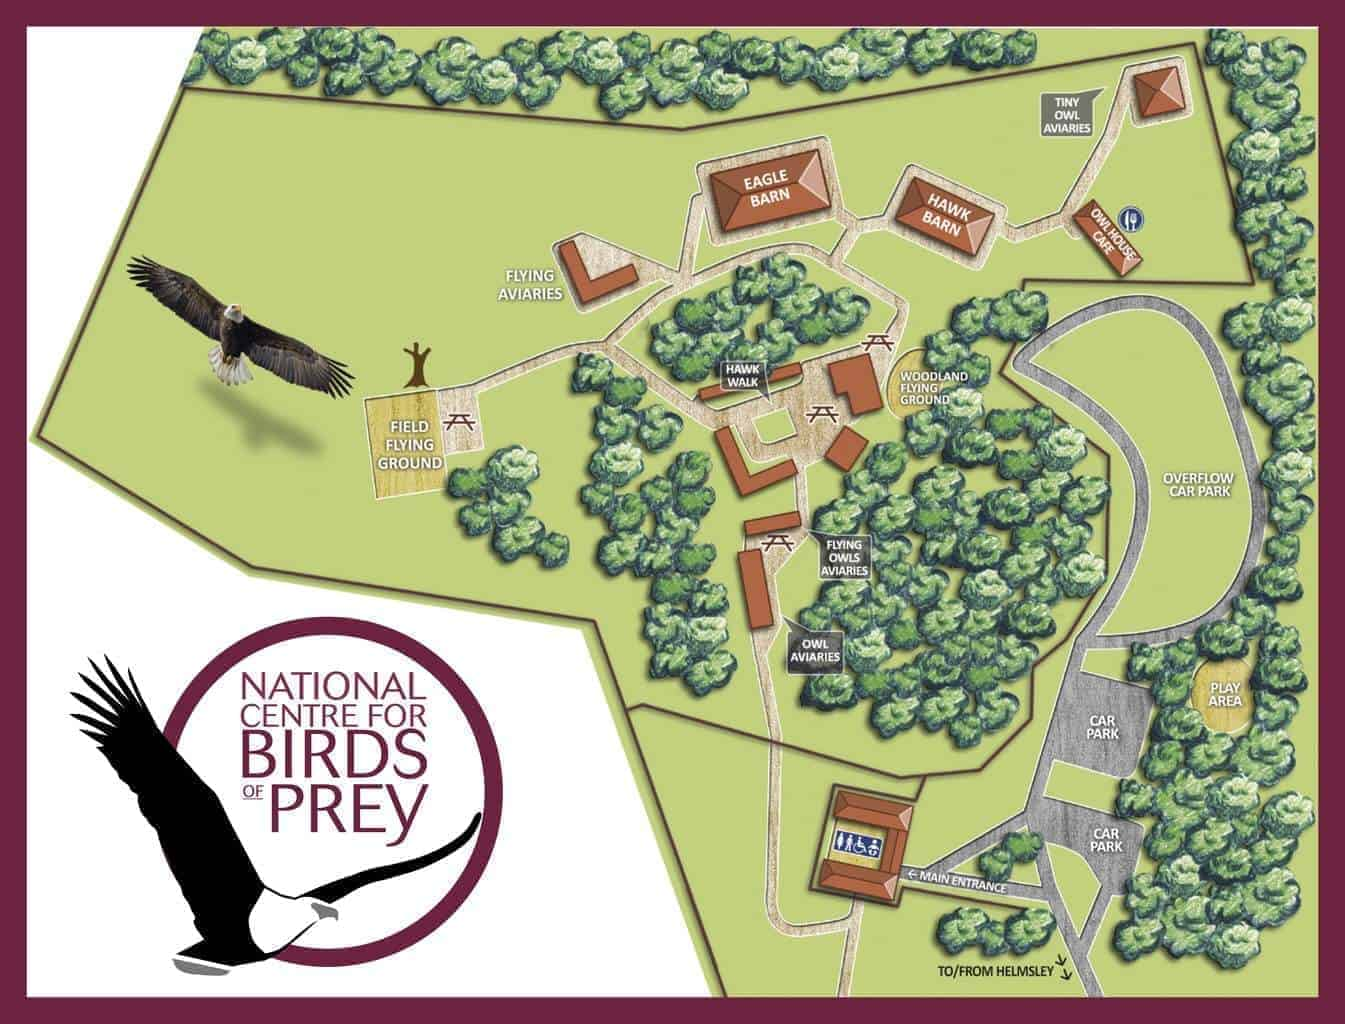 Map of National Centre for Birds of Prey, Duncombe Park, Helmsley UK